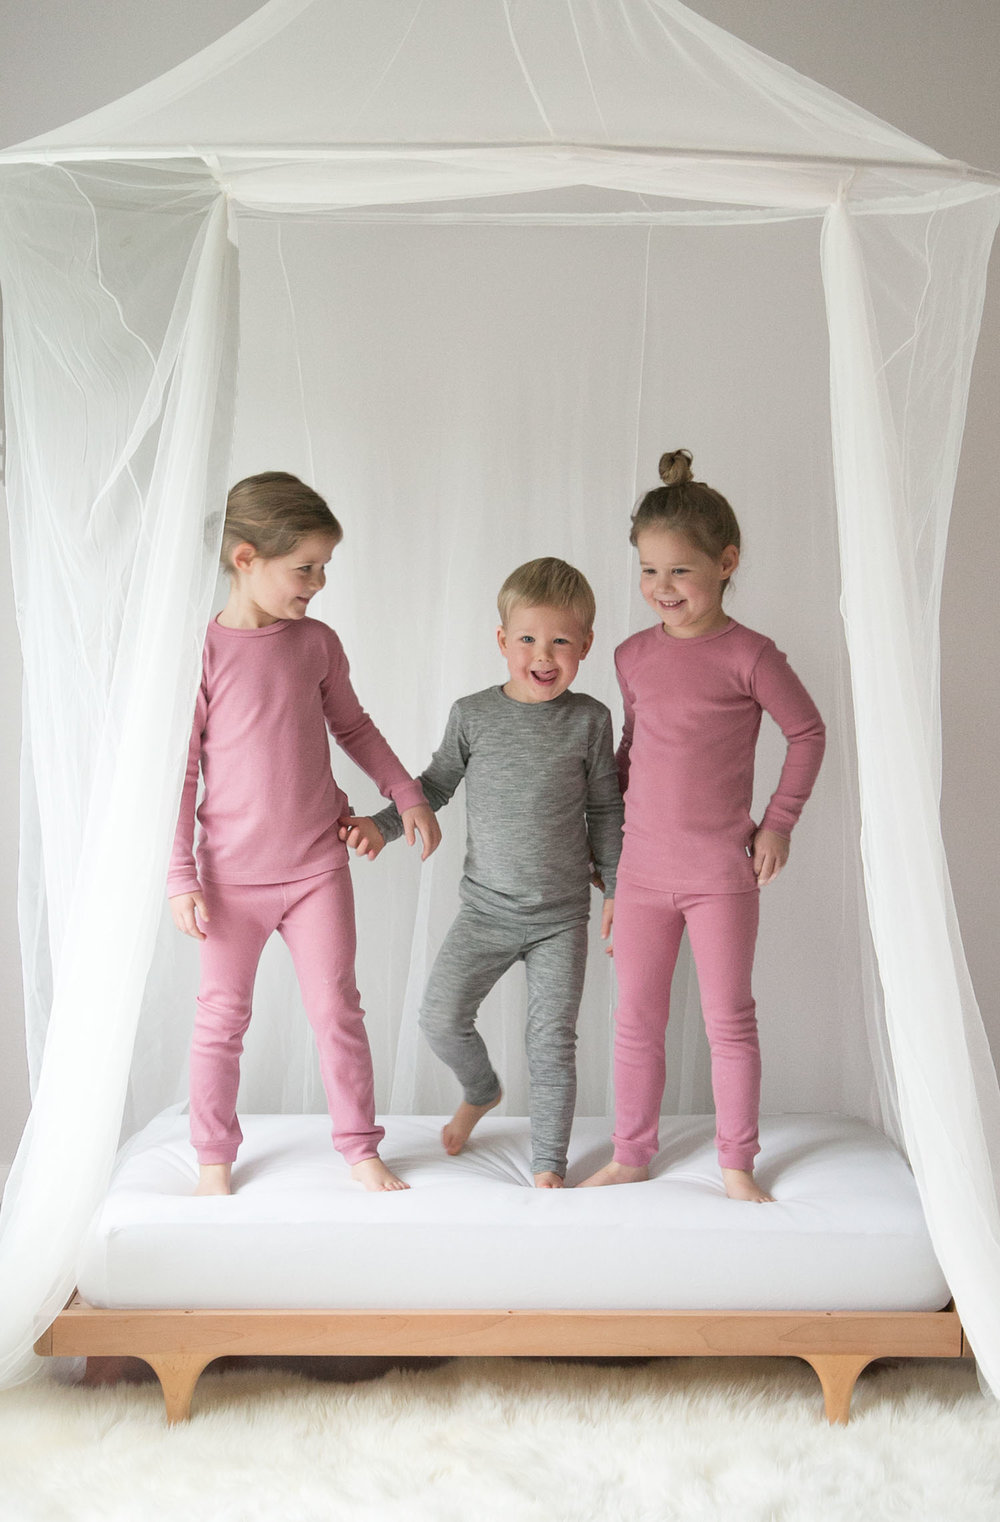 the kids in merino wool pajamas from simply merino